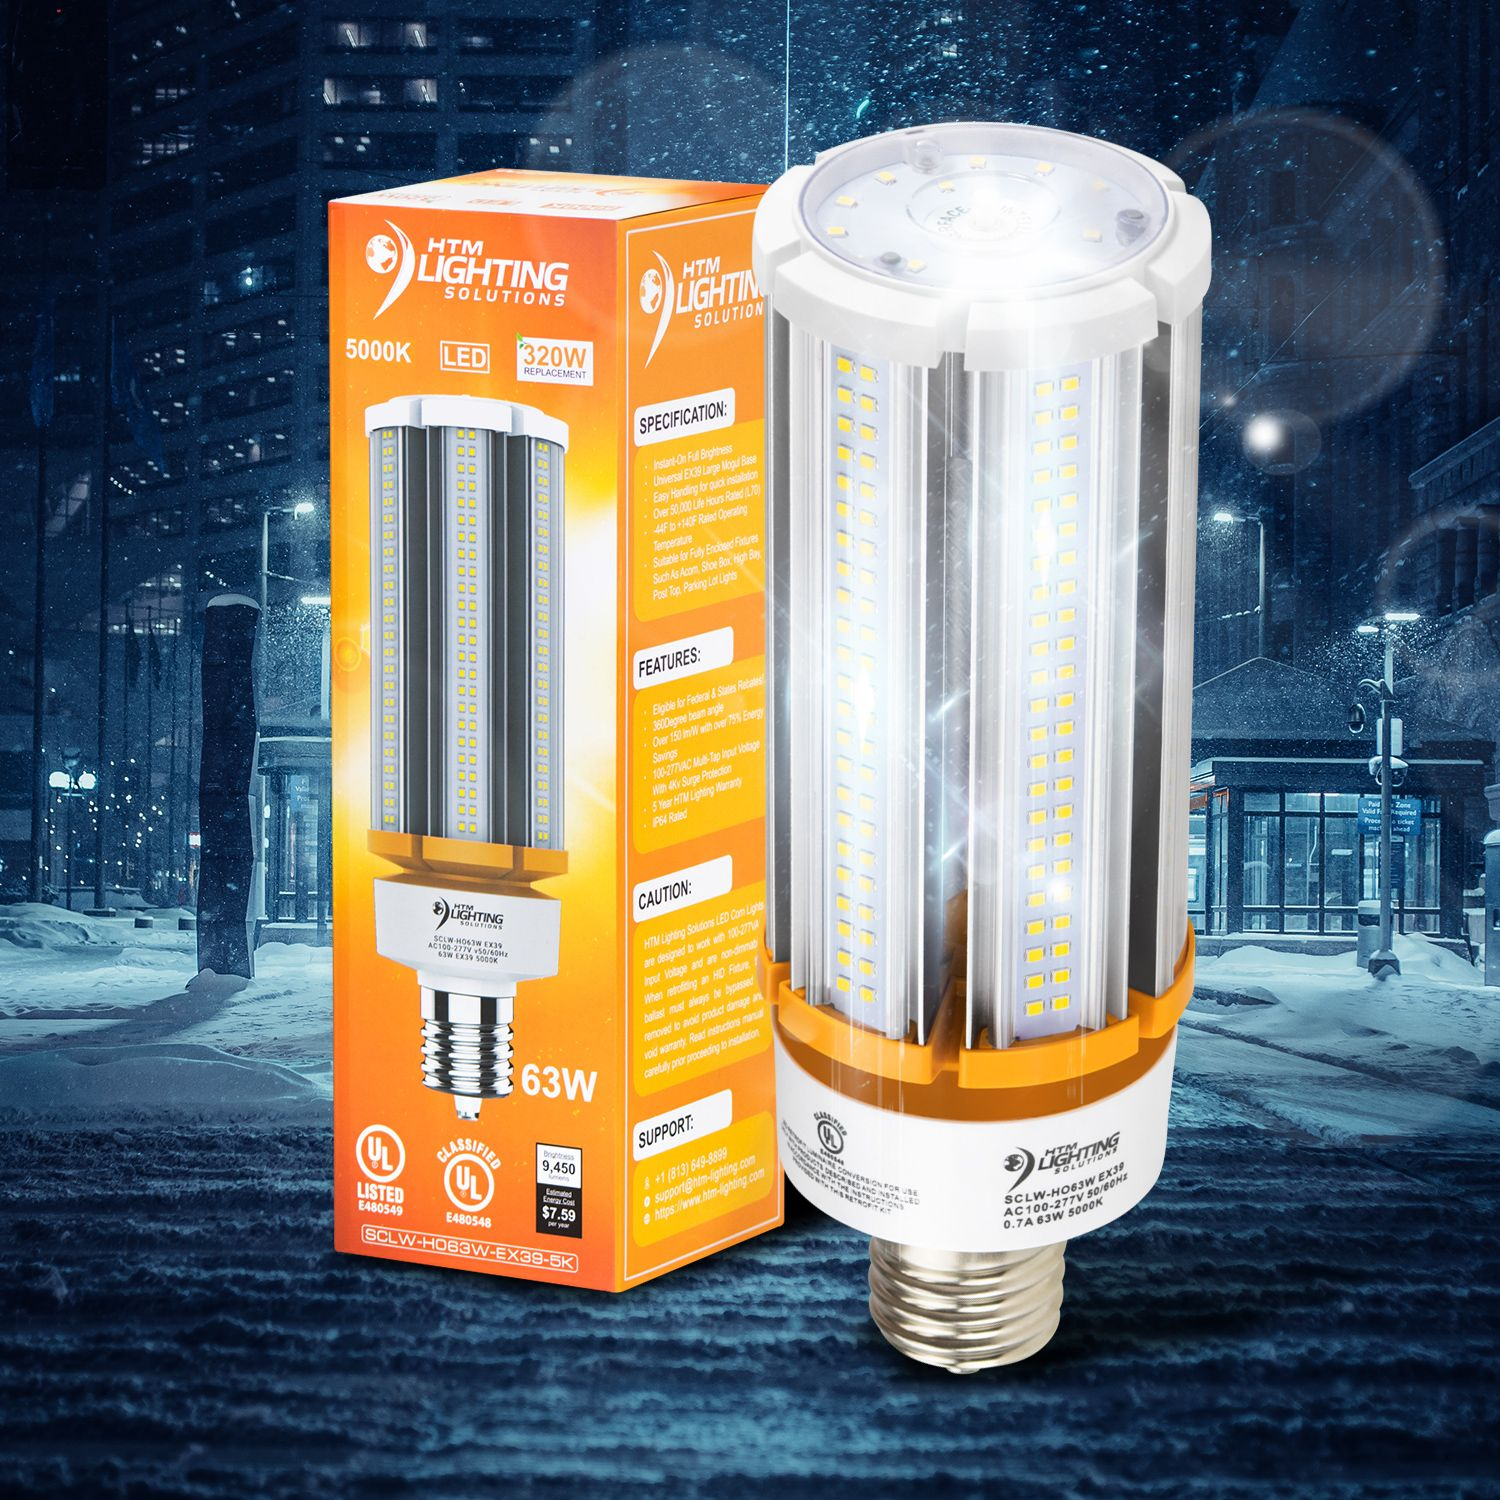 Save Over 75 Instantly 63w Led Corn Light Replaces Up To 320w To 400w Mh Bulbs Insanely Bright Stunning Lumen Ou Security Lights Led Light Architecture